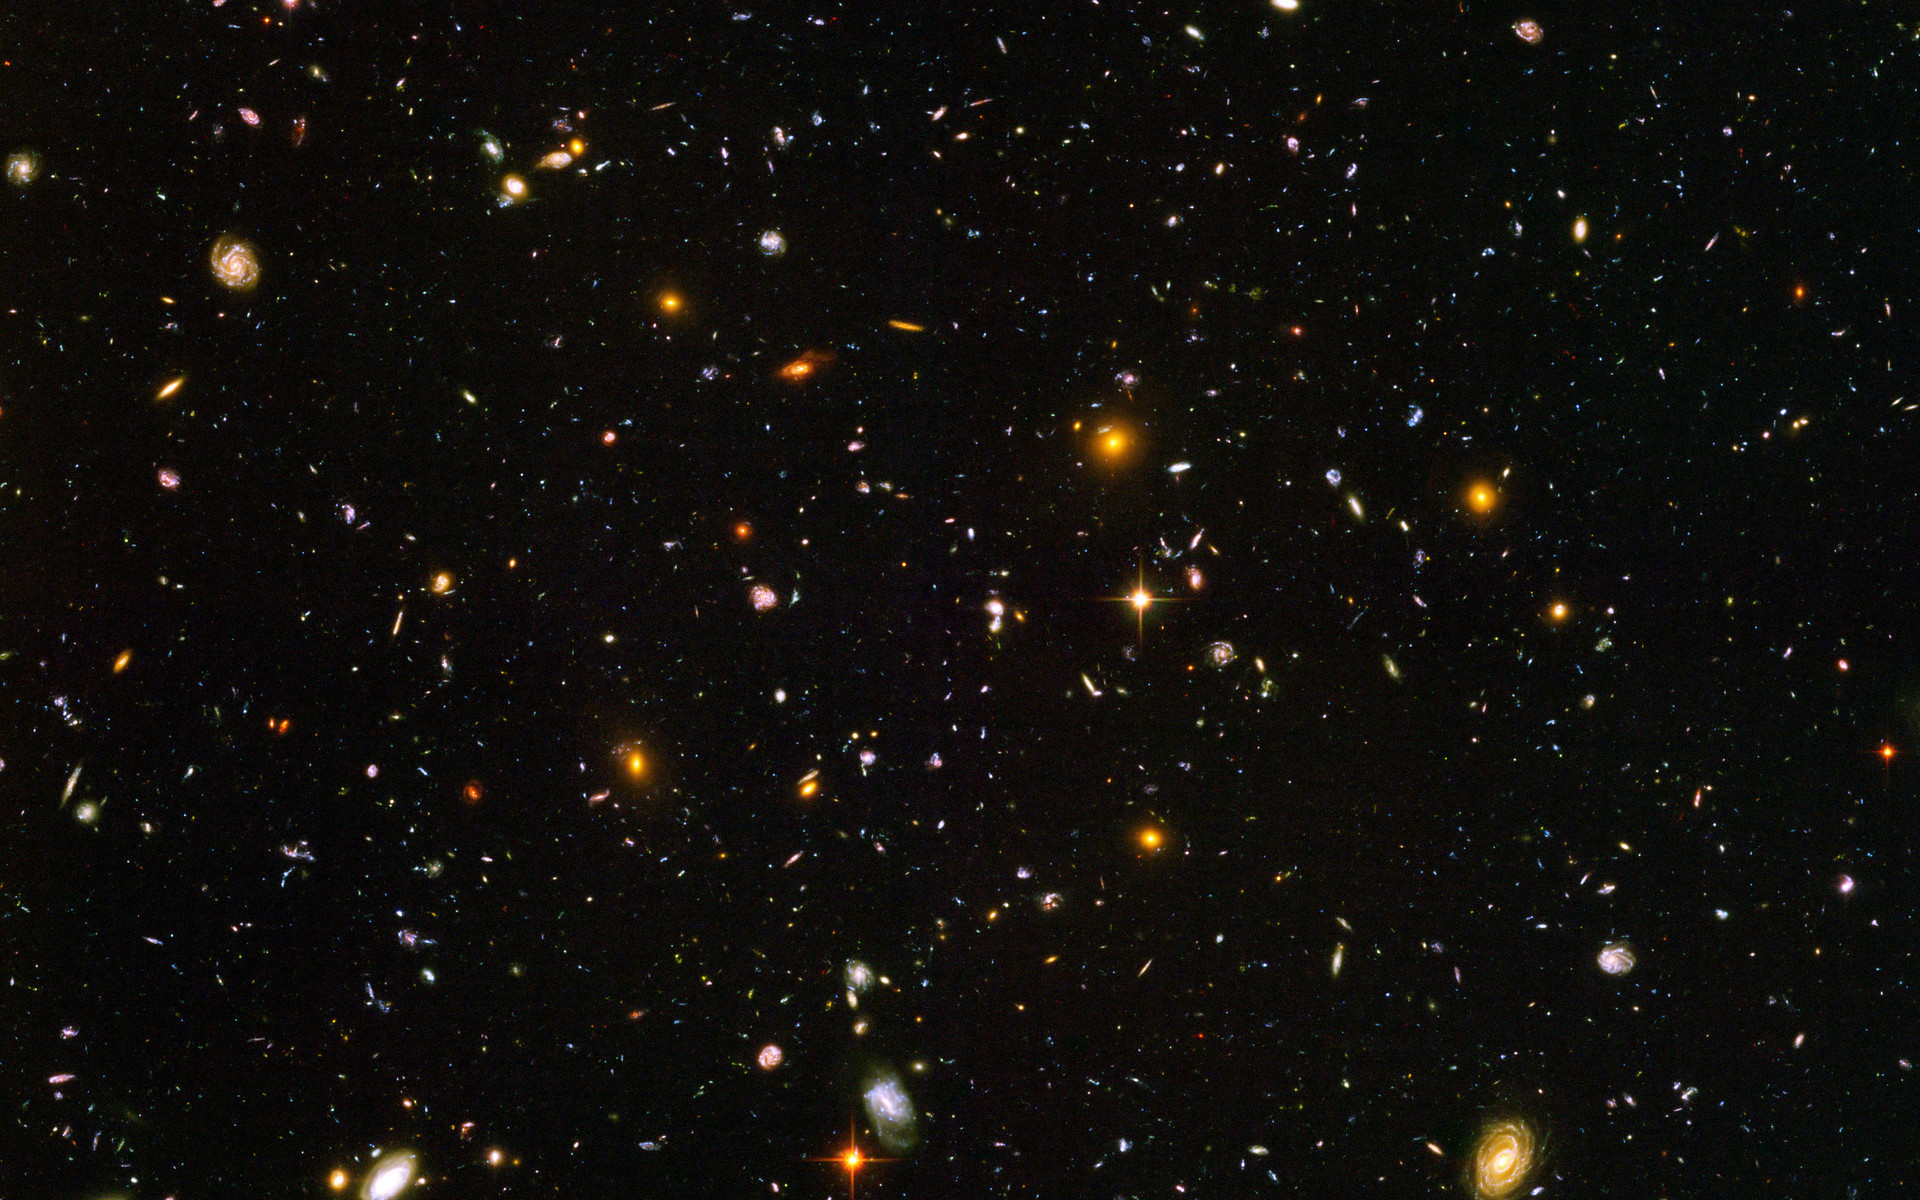 hubble ultra deep field wallpaper 1600x900 (46+ images)